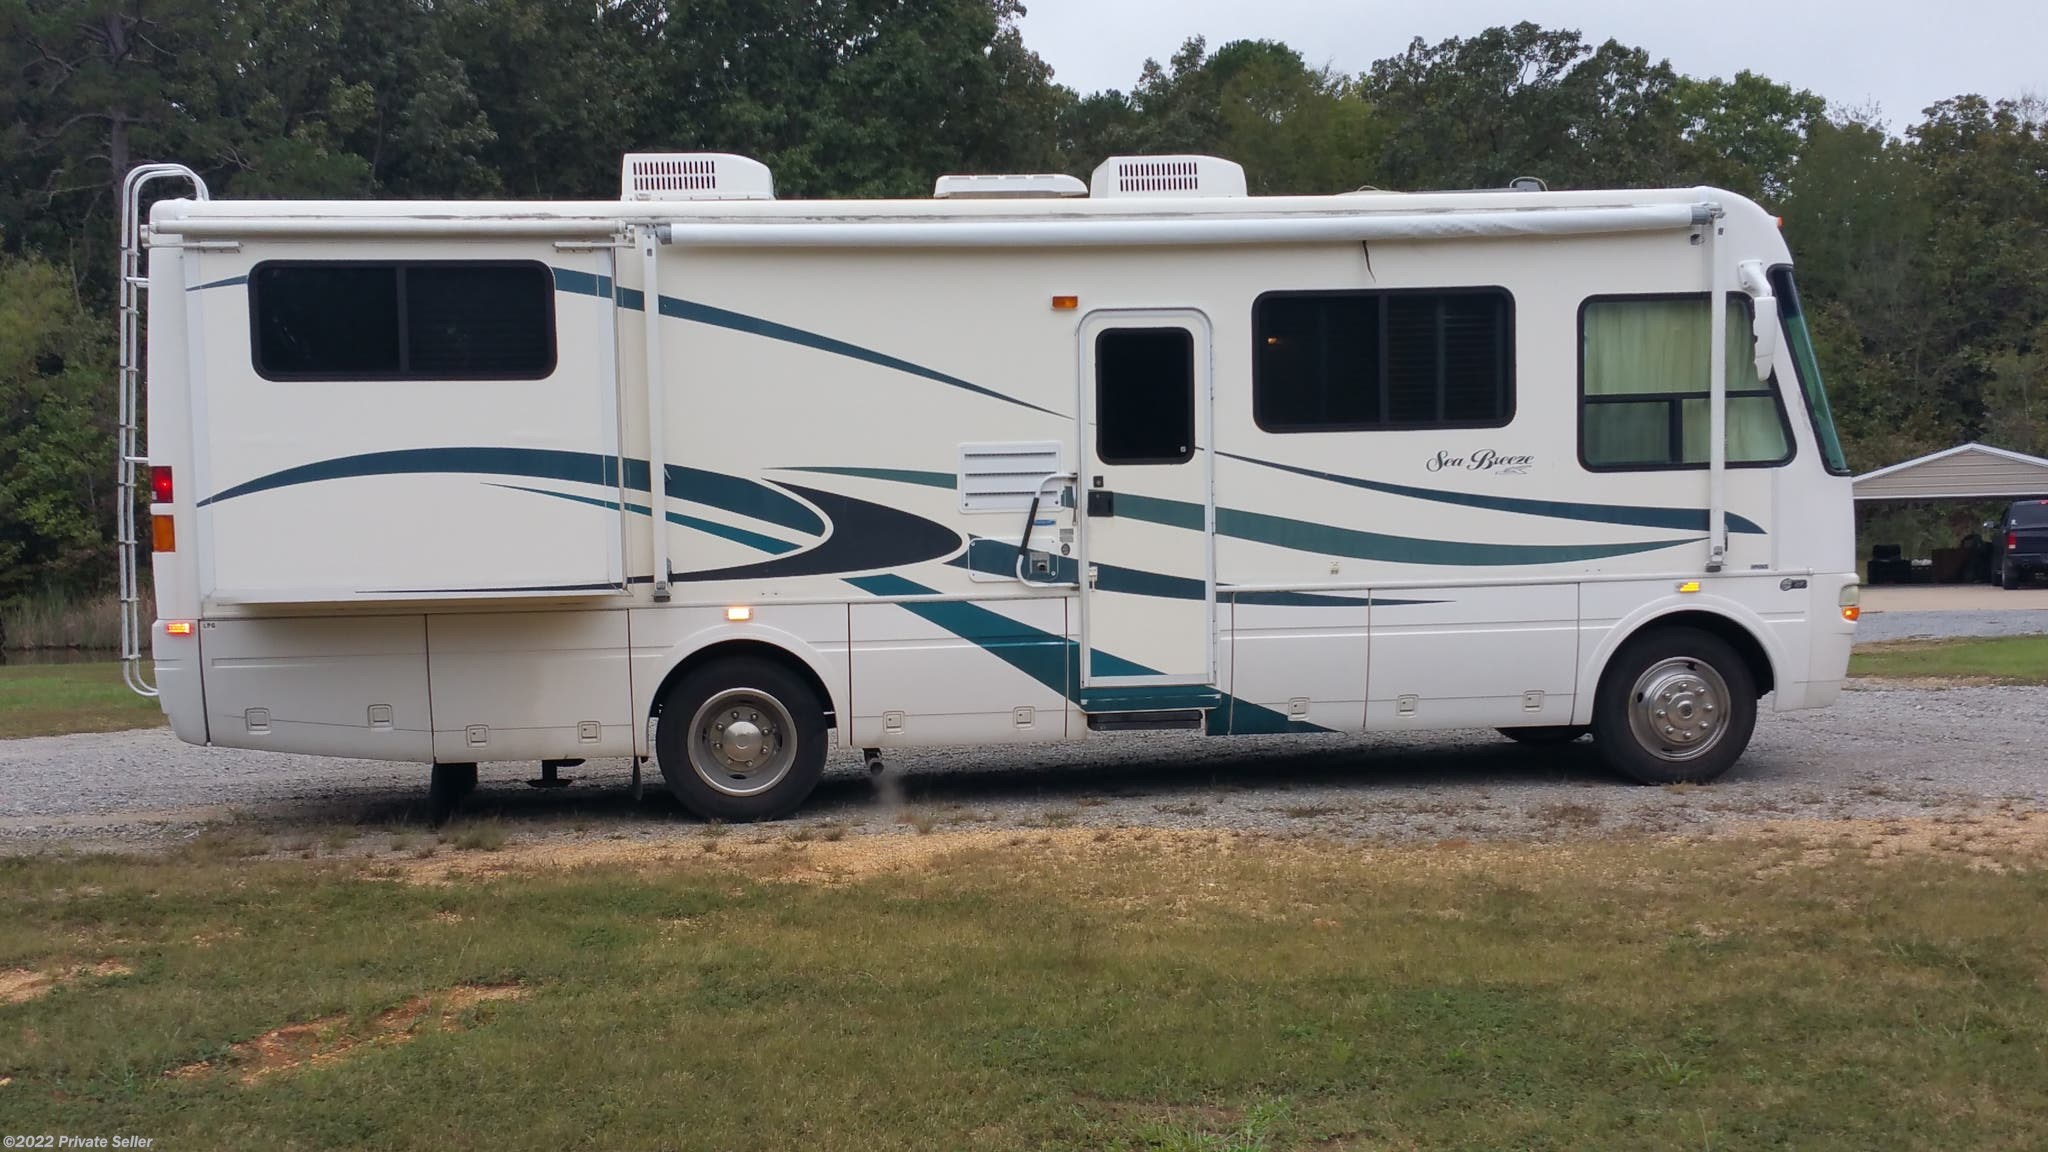 2003 National Rv Sea Breeze Xl 8311 For Sale In Mabelvale Ar. Wiring. Sea Breeze Motorhome Water System Diagram At Scoala.co